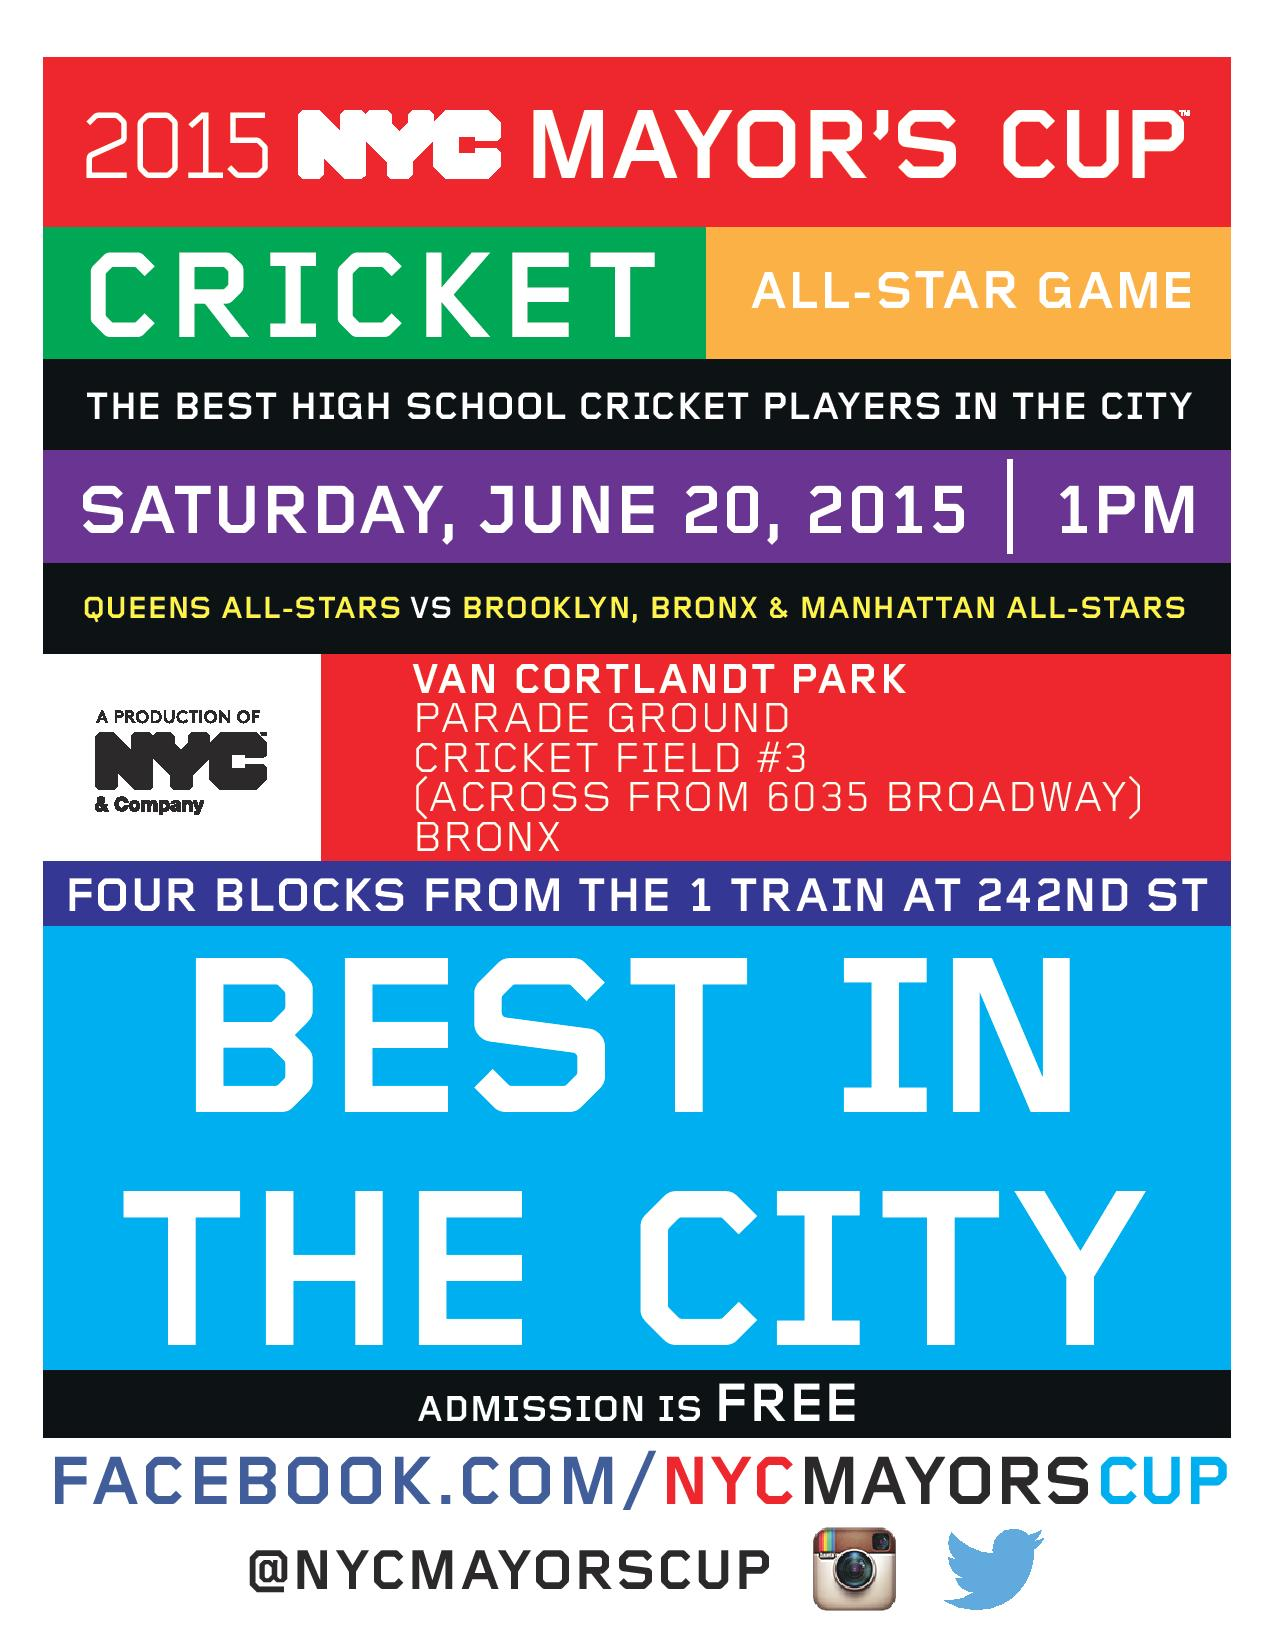 2015 NYC Mayor's Cup Cricket All-Star Game at Van Cortlandt Park